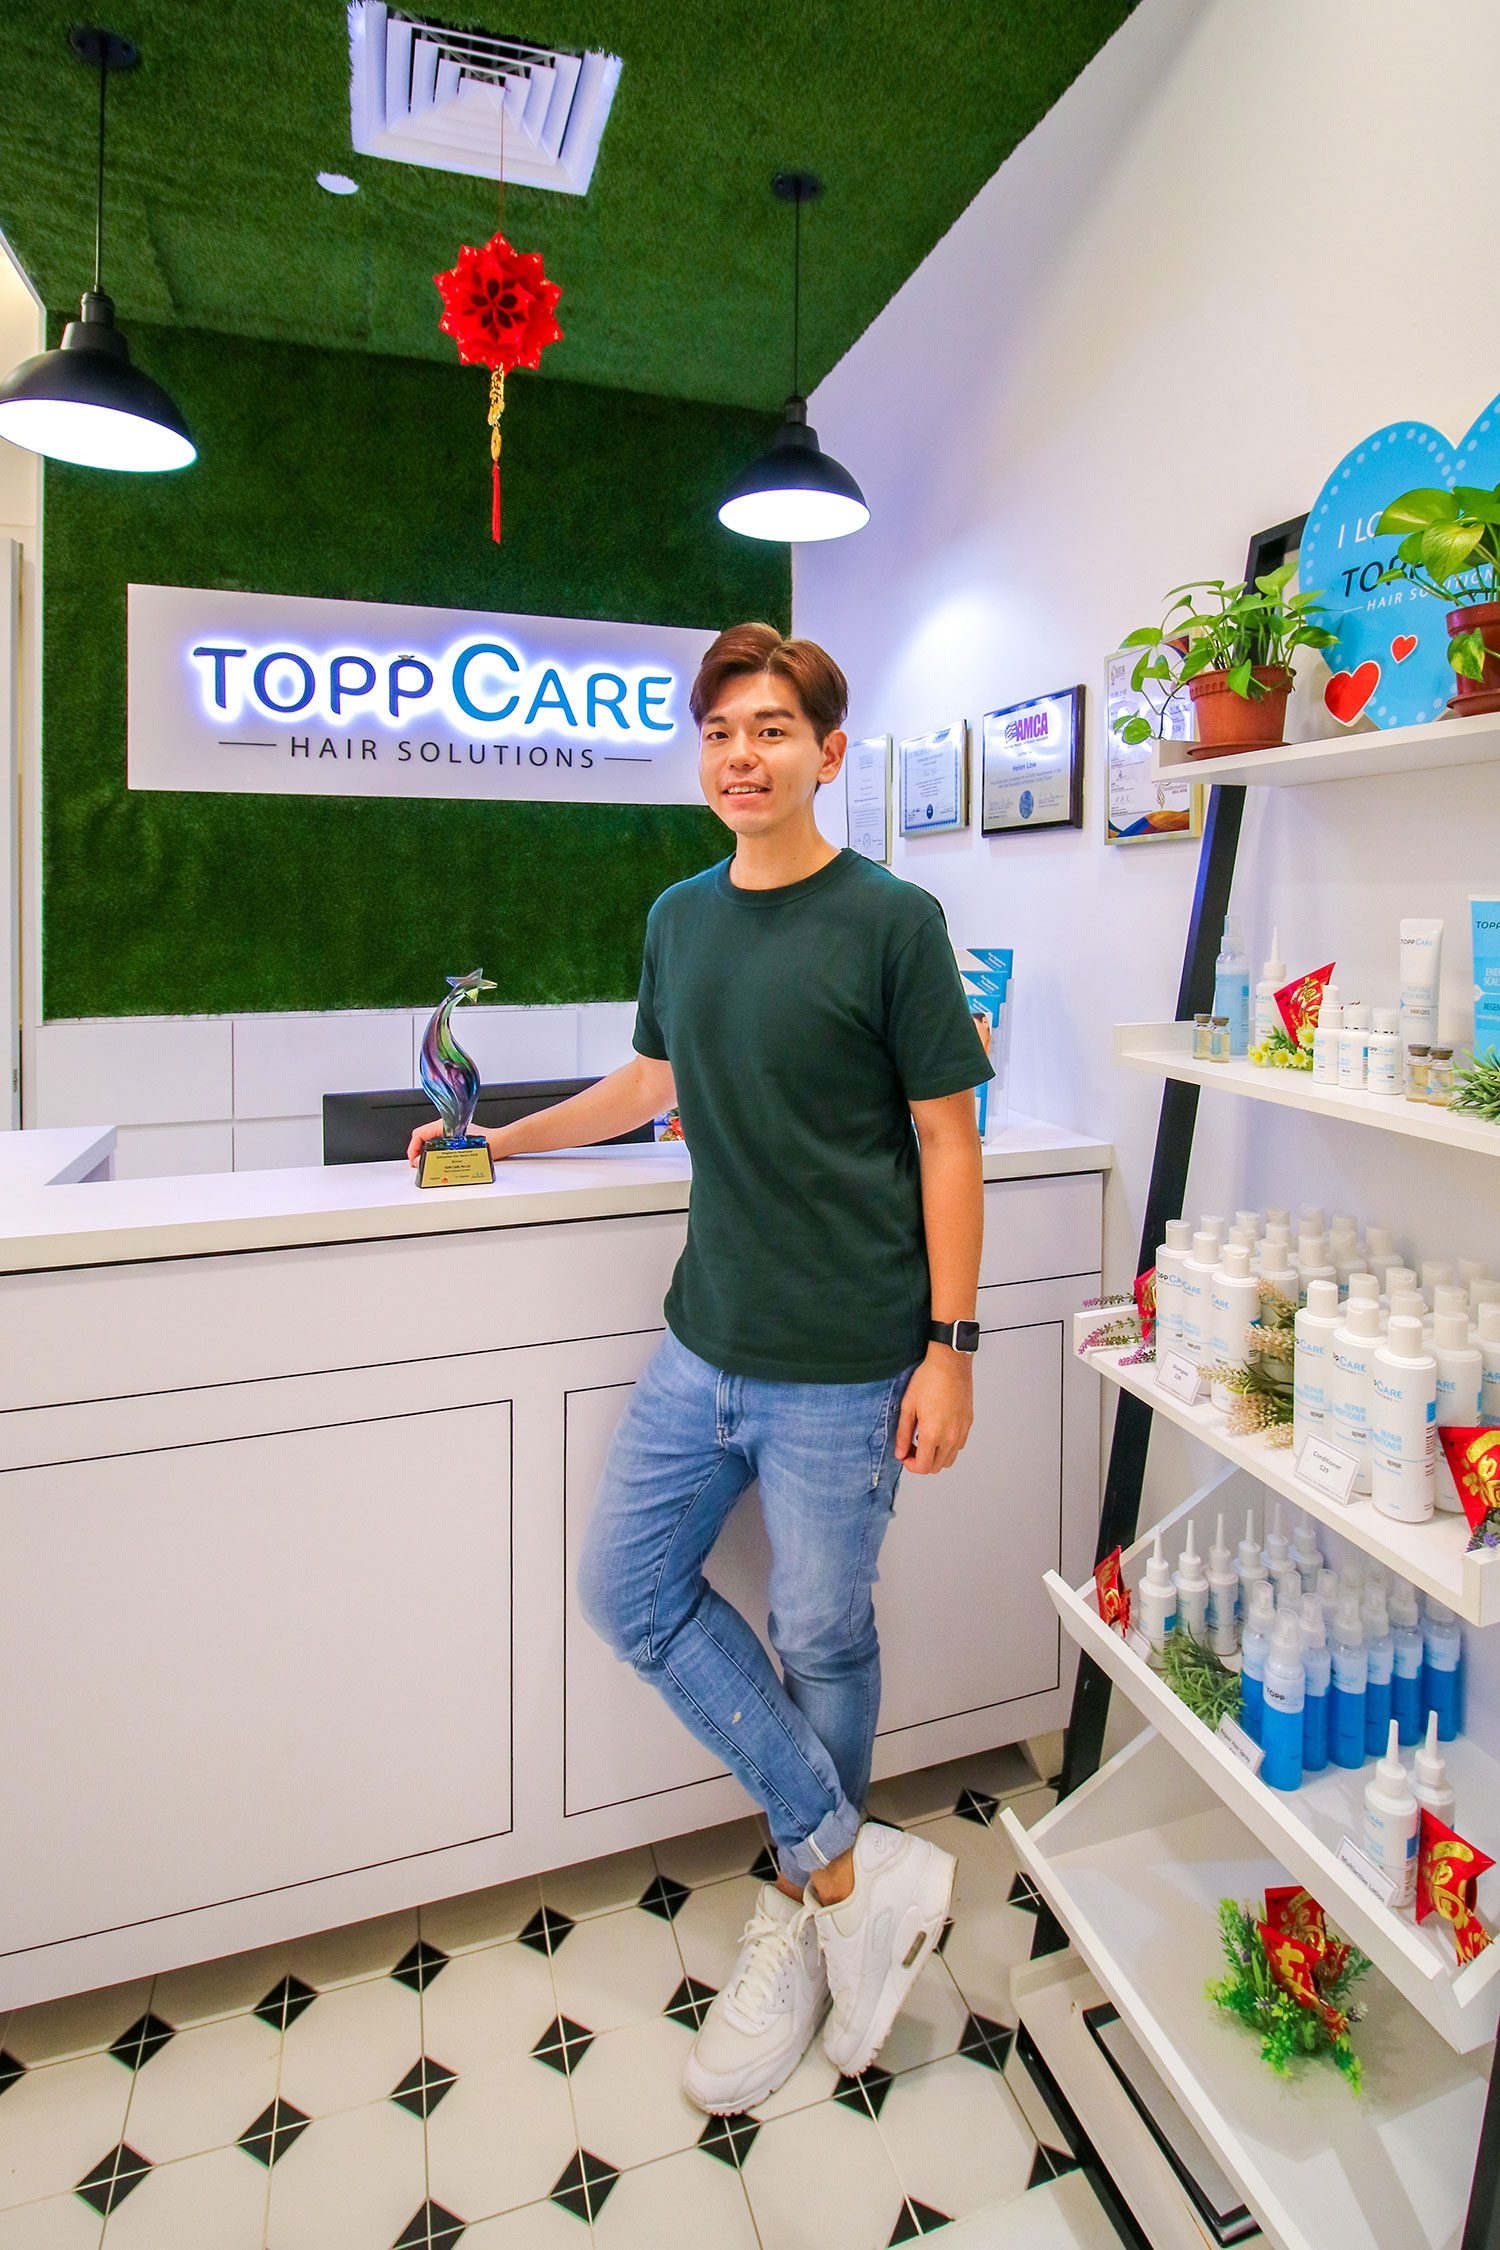 Toppcare-hair-solutions-darrenbloggie